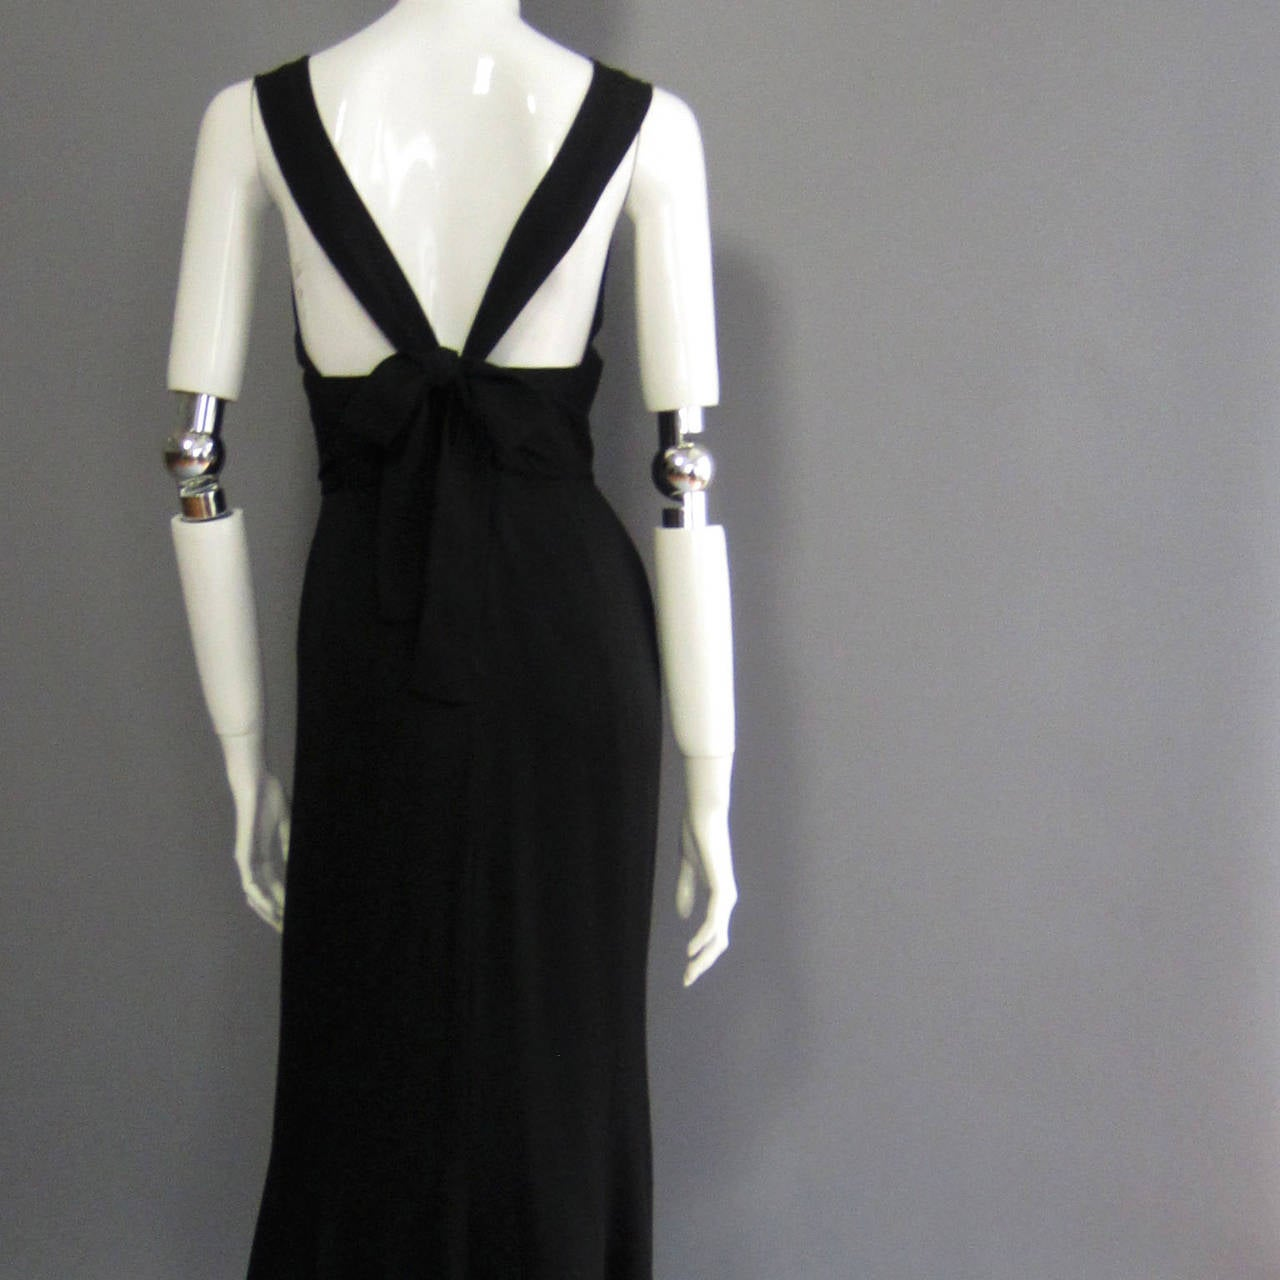 NORMAN NORELL Black Column Evening Gown with Back Tie Detail For Sale 2